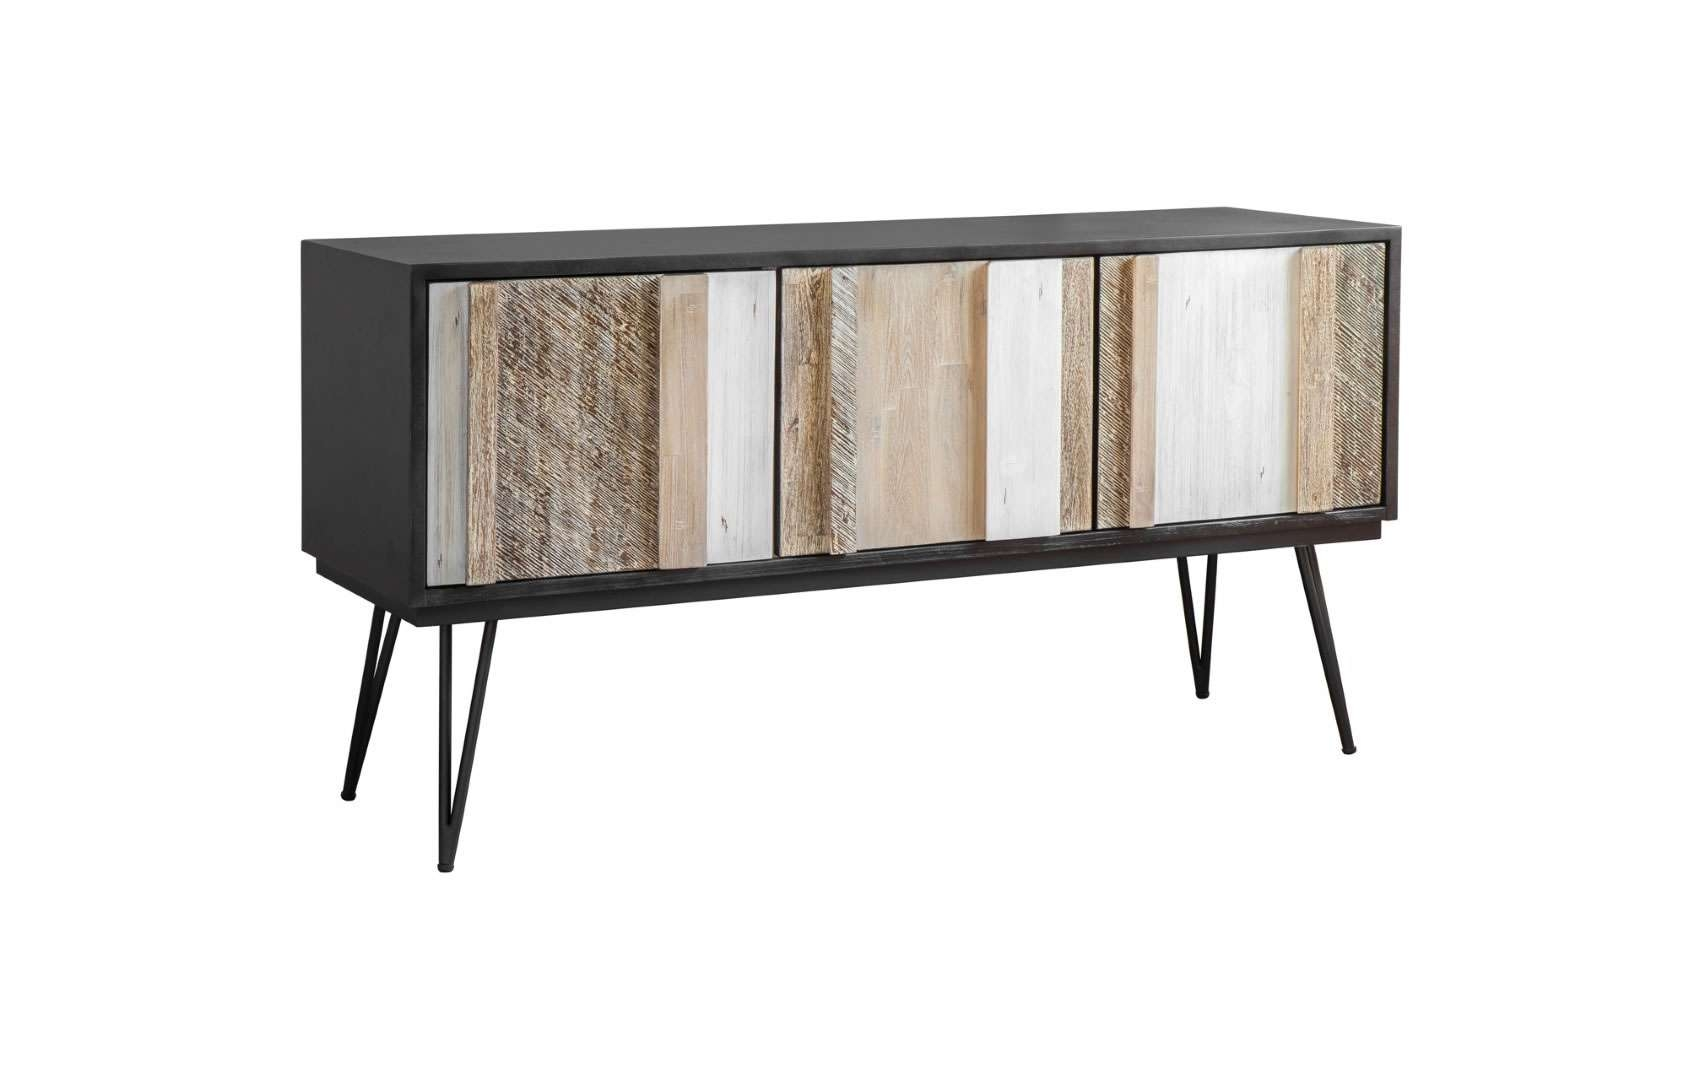 Eclectic – Lh Imports Noir Havana Sideboard – Lh Nha003B | Modern With Eclectic Sideboards (Gallery 11 of 20)